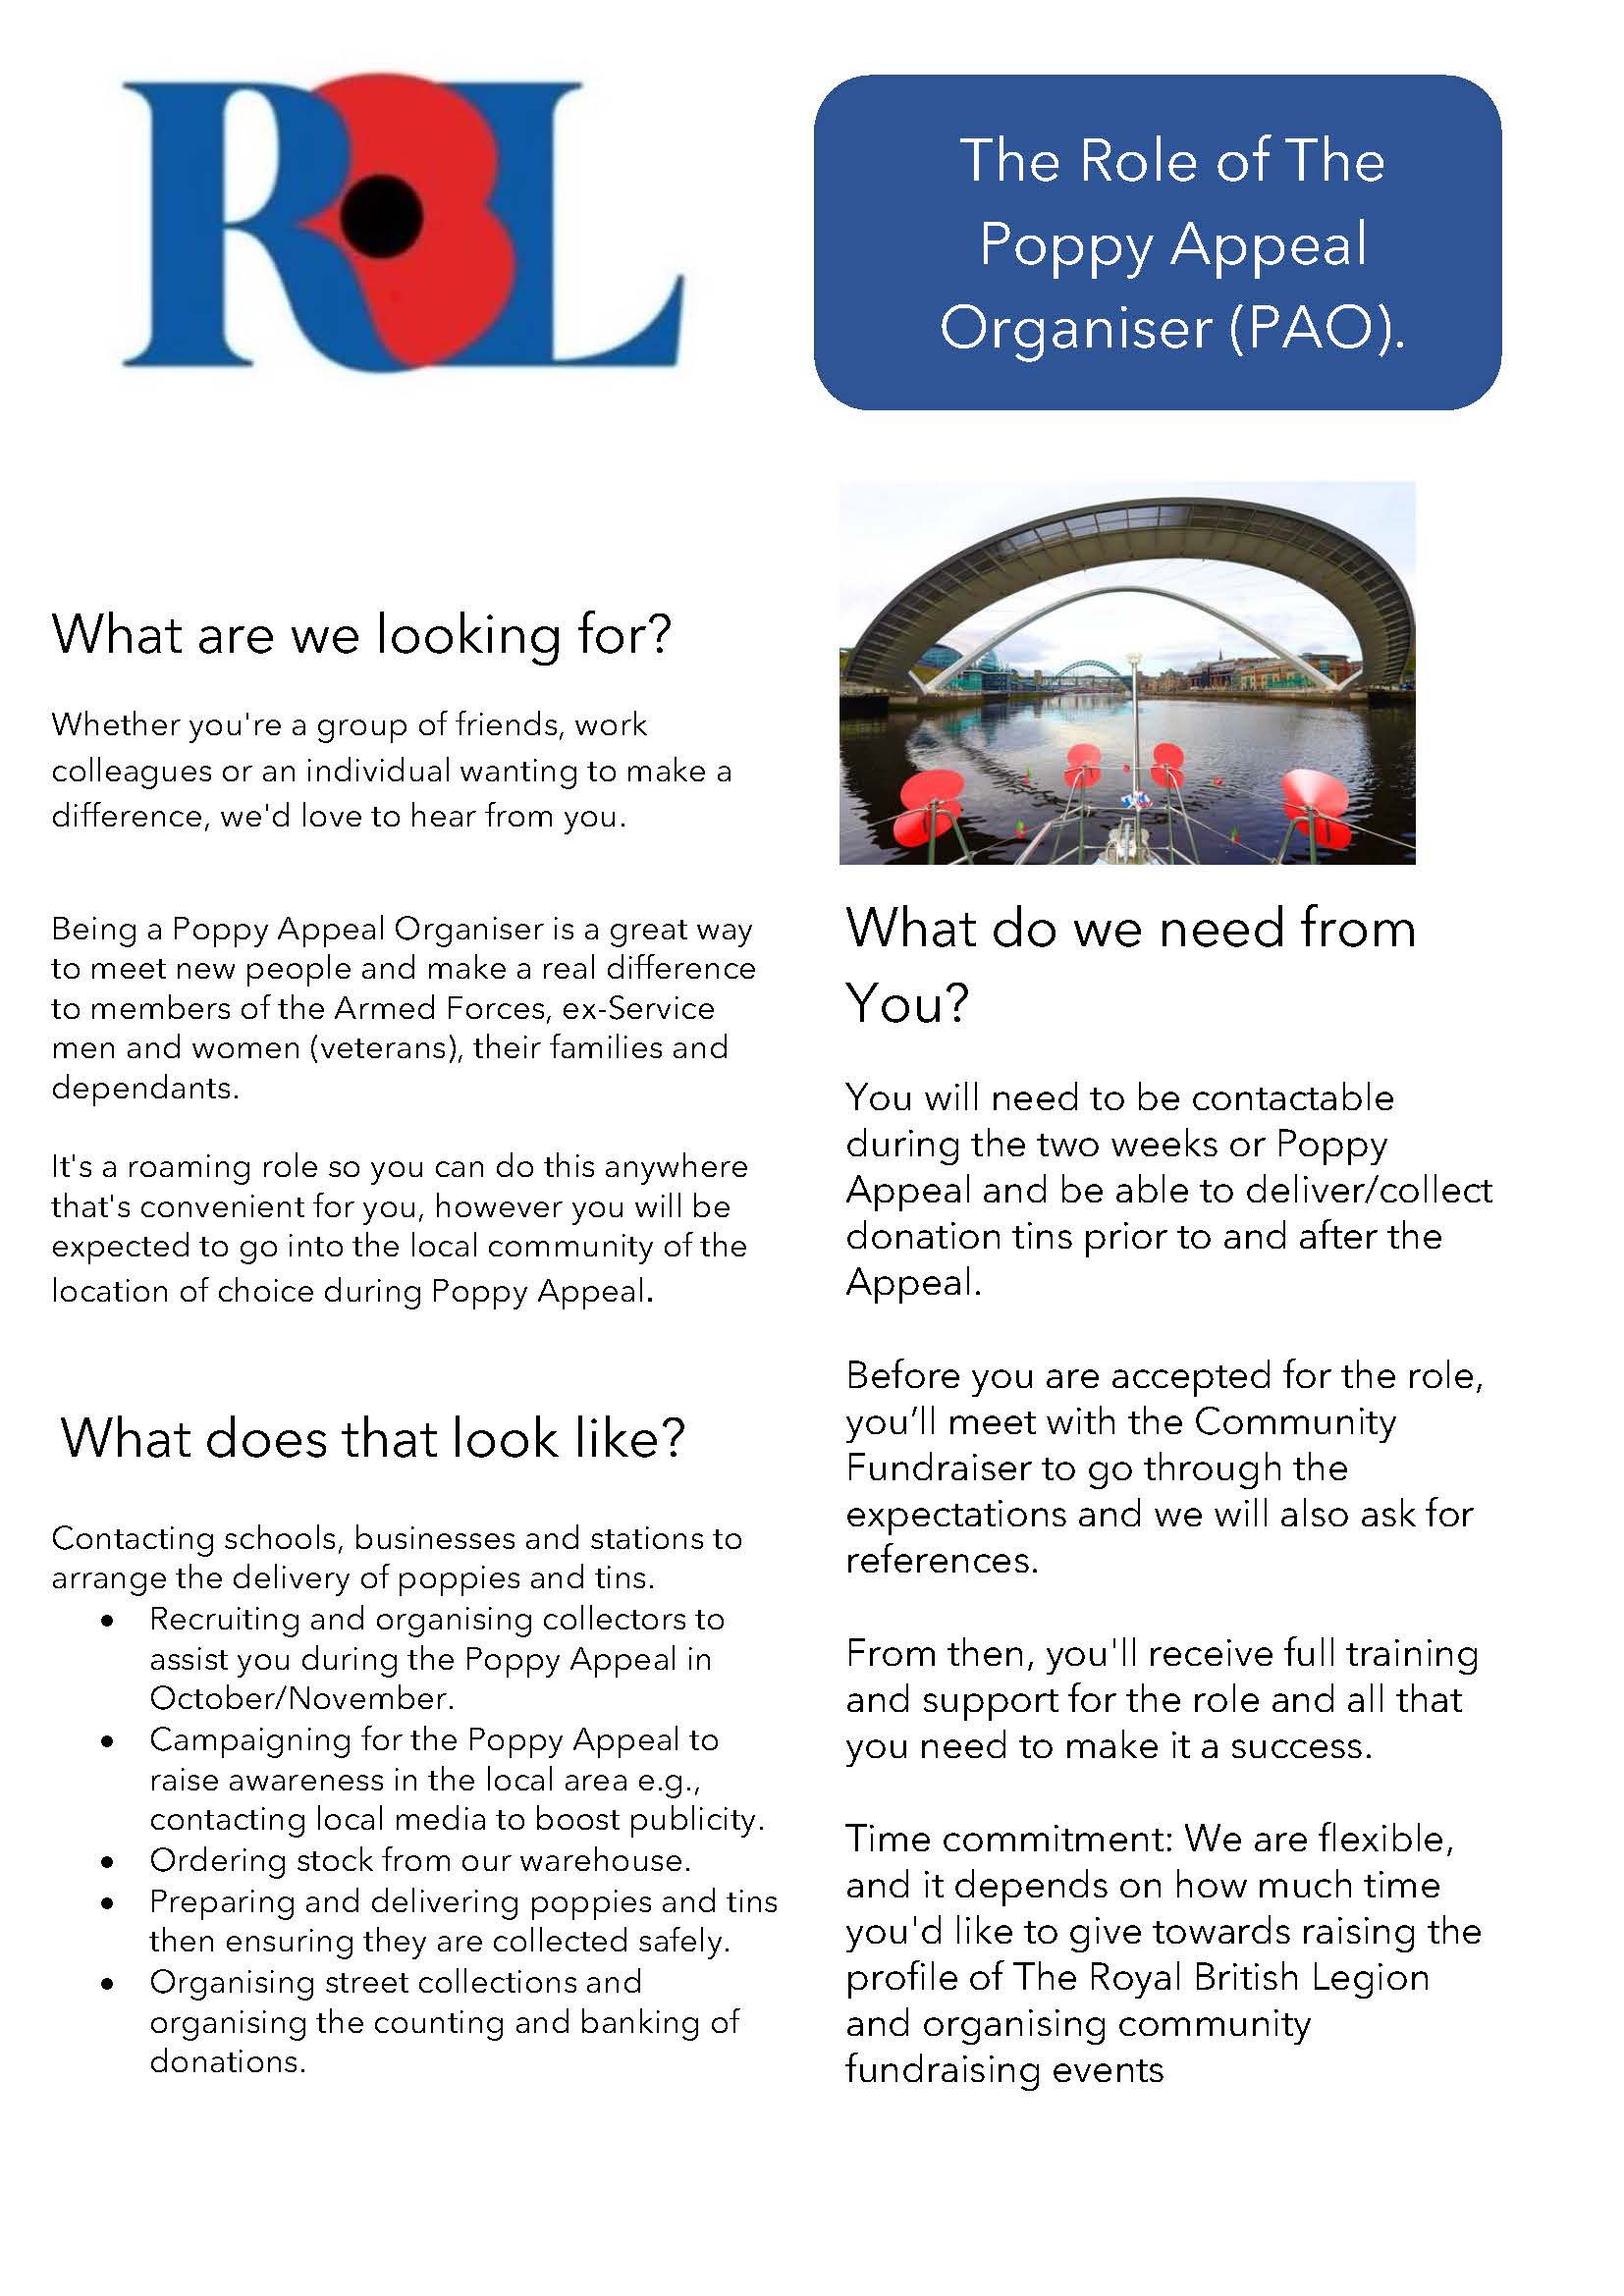 Poppy Appeal Representative Recruitment Flyer Page 3